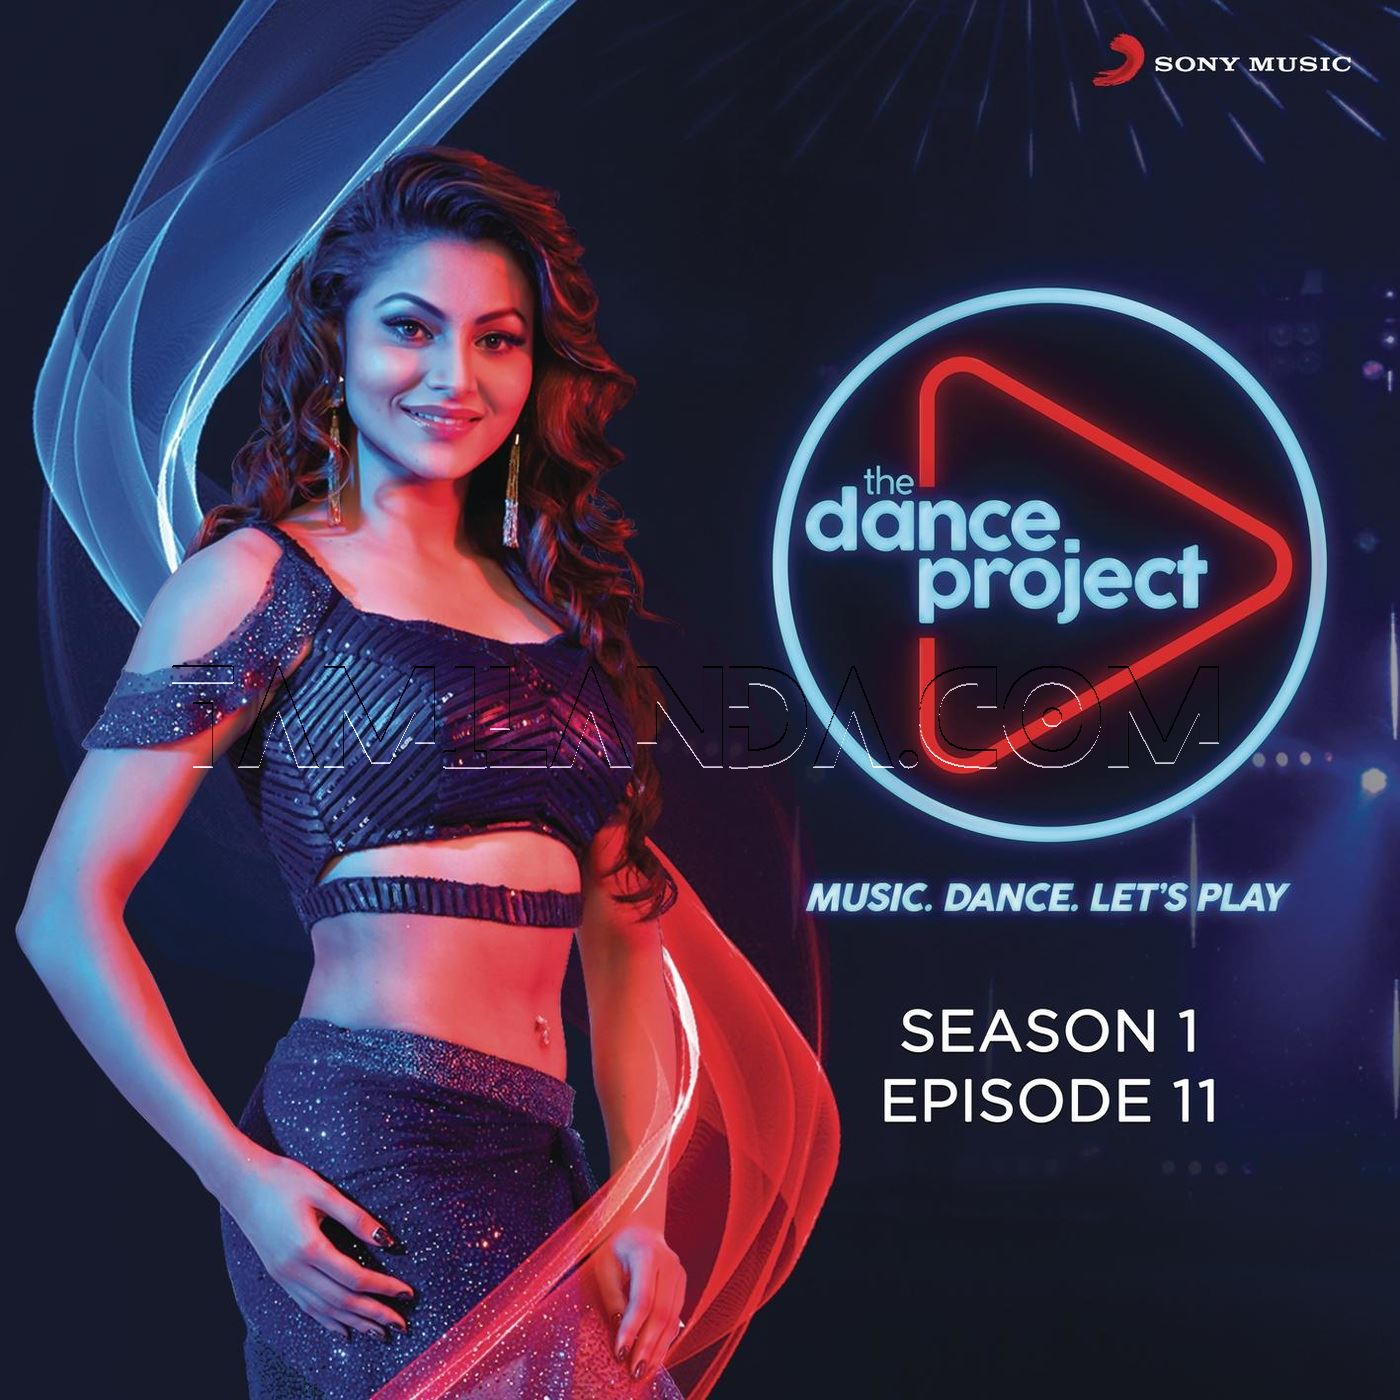 The Dance Project (Season 1 Episode 11) FLAC Songs (2019)